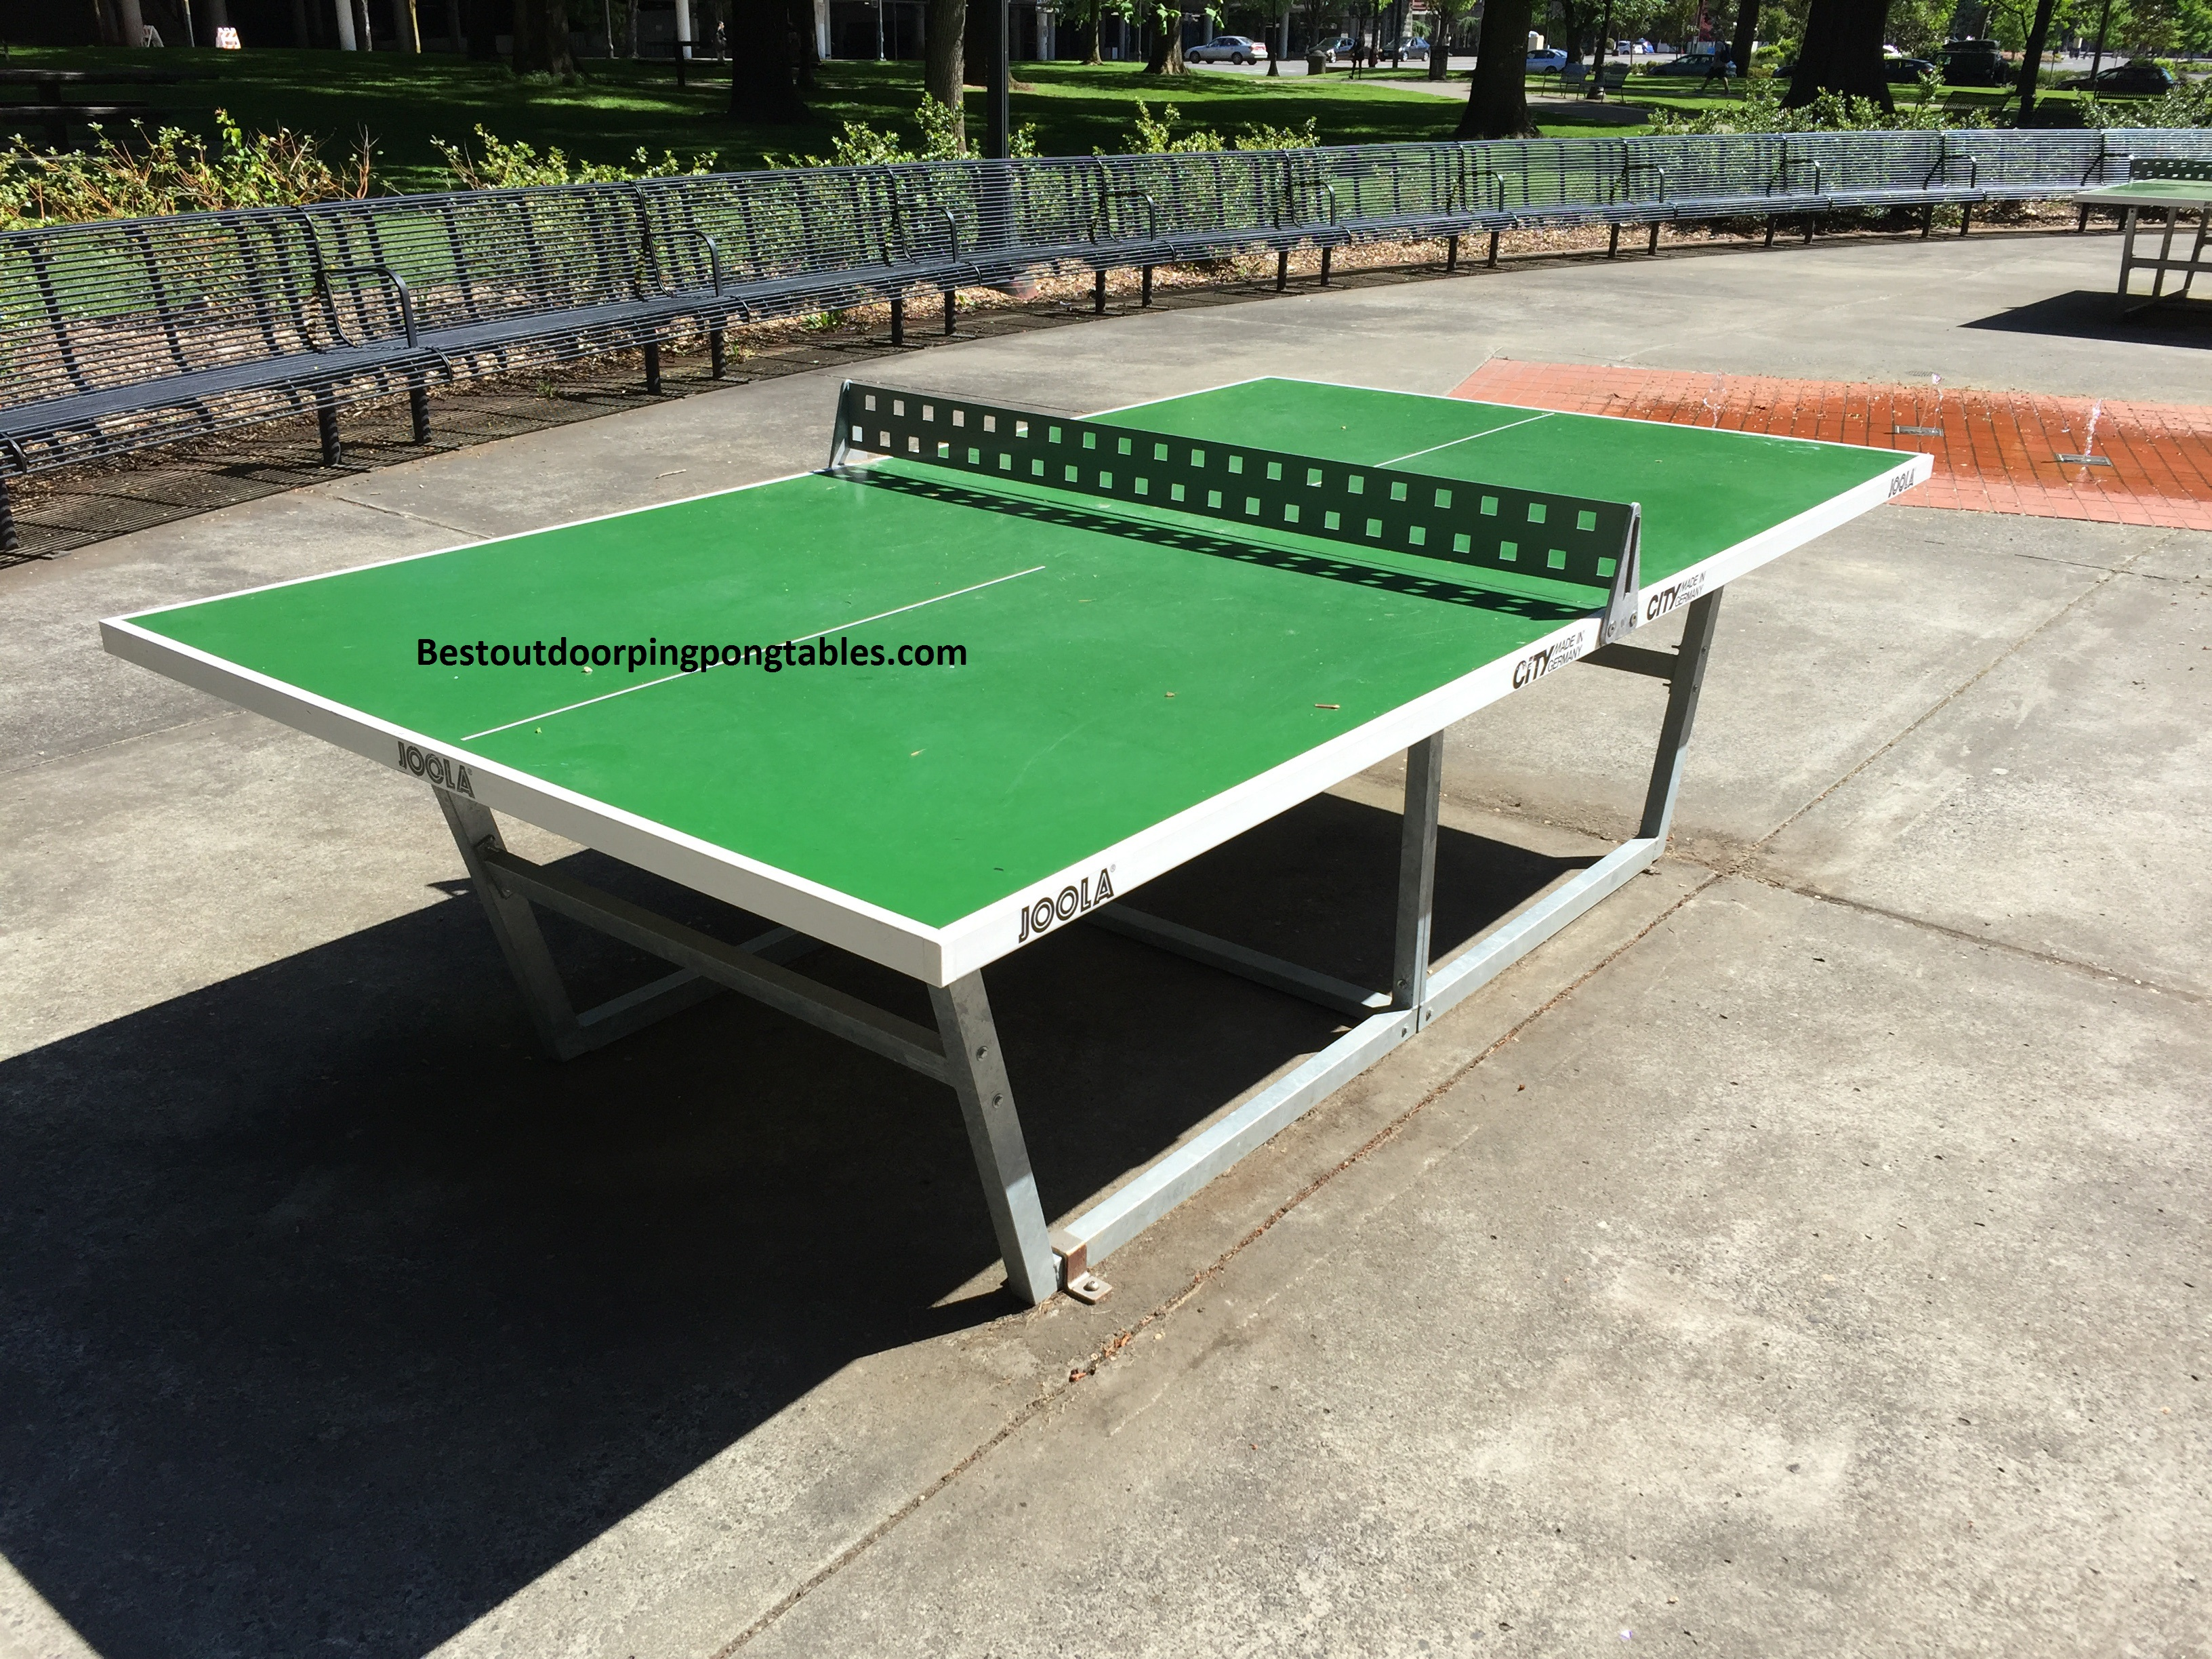 JOOLA City Ping Pong Table